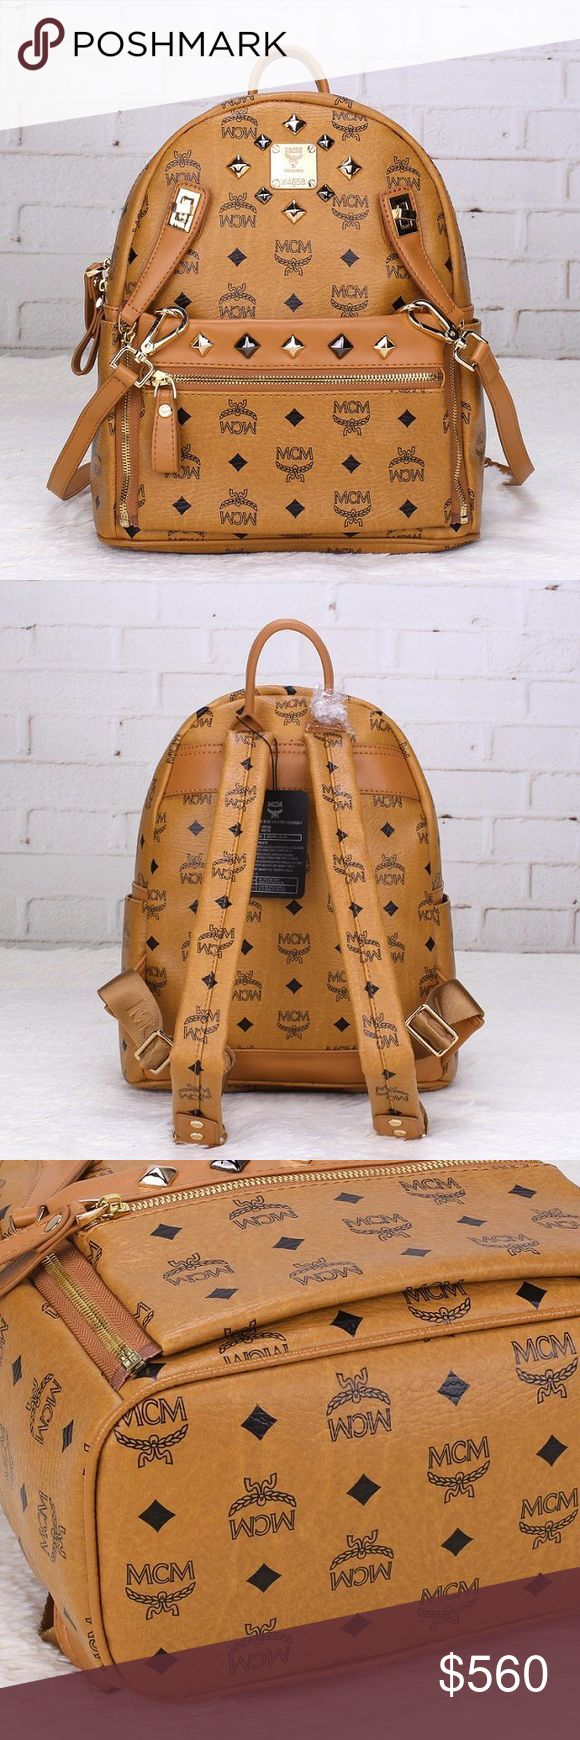 MCM Bookbag ****ONLY ACCEPTING ORDERS ONLINE AT WWW.BAGSOFFICIAL.BIGCARTEL.COM | Please don't ask obvious questions, price reflects. Real leather! 🚨💥NEW INVENTORY 💥🚨 $414.00 MCM Bags Backpacks